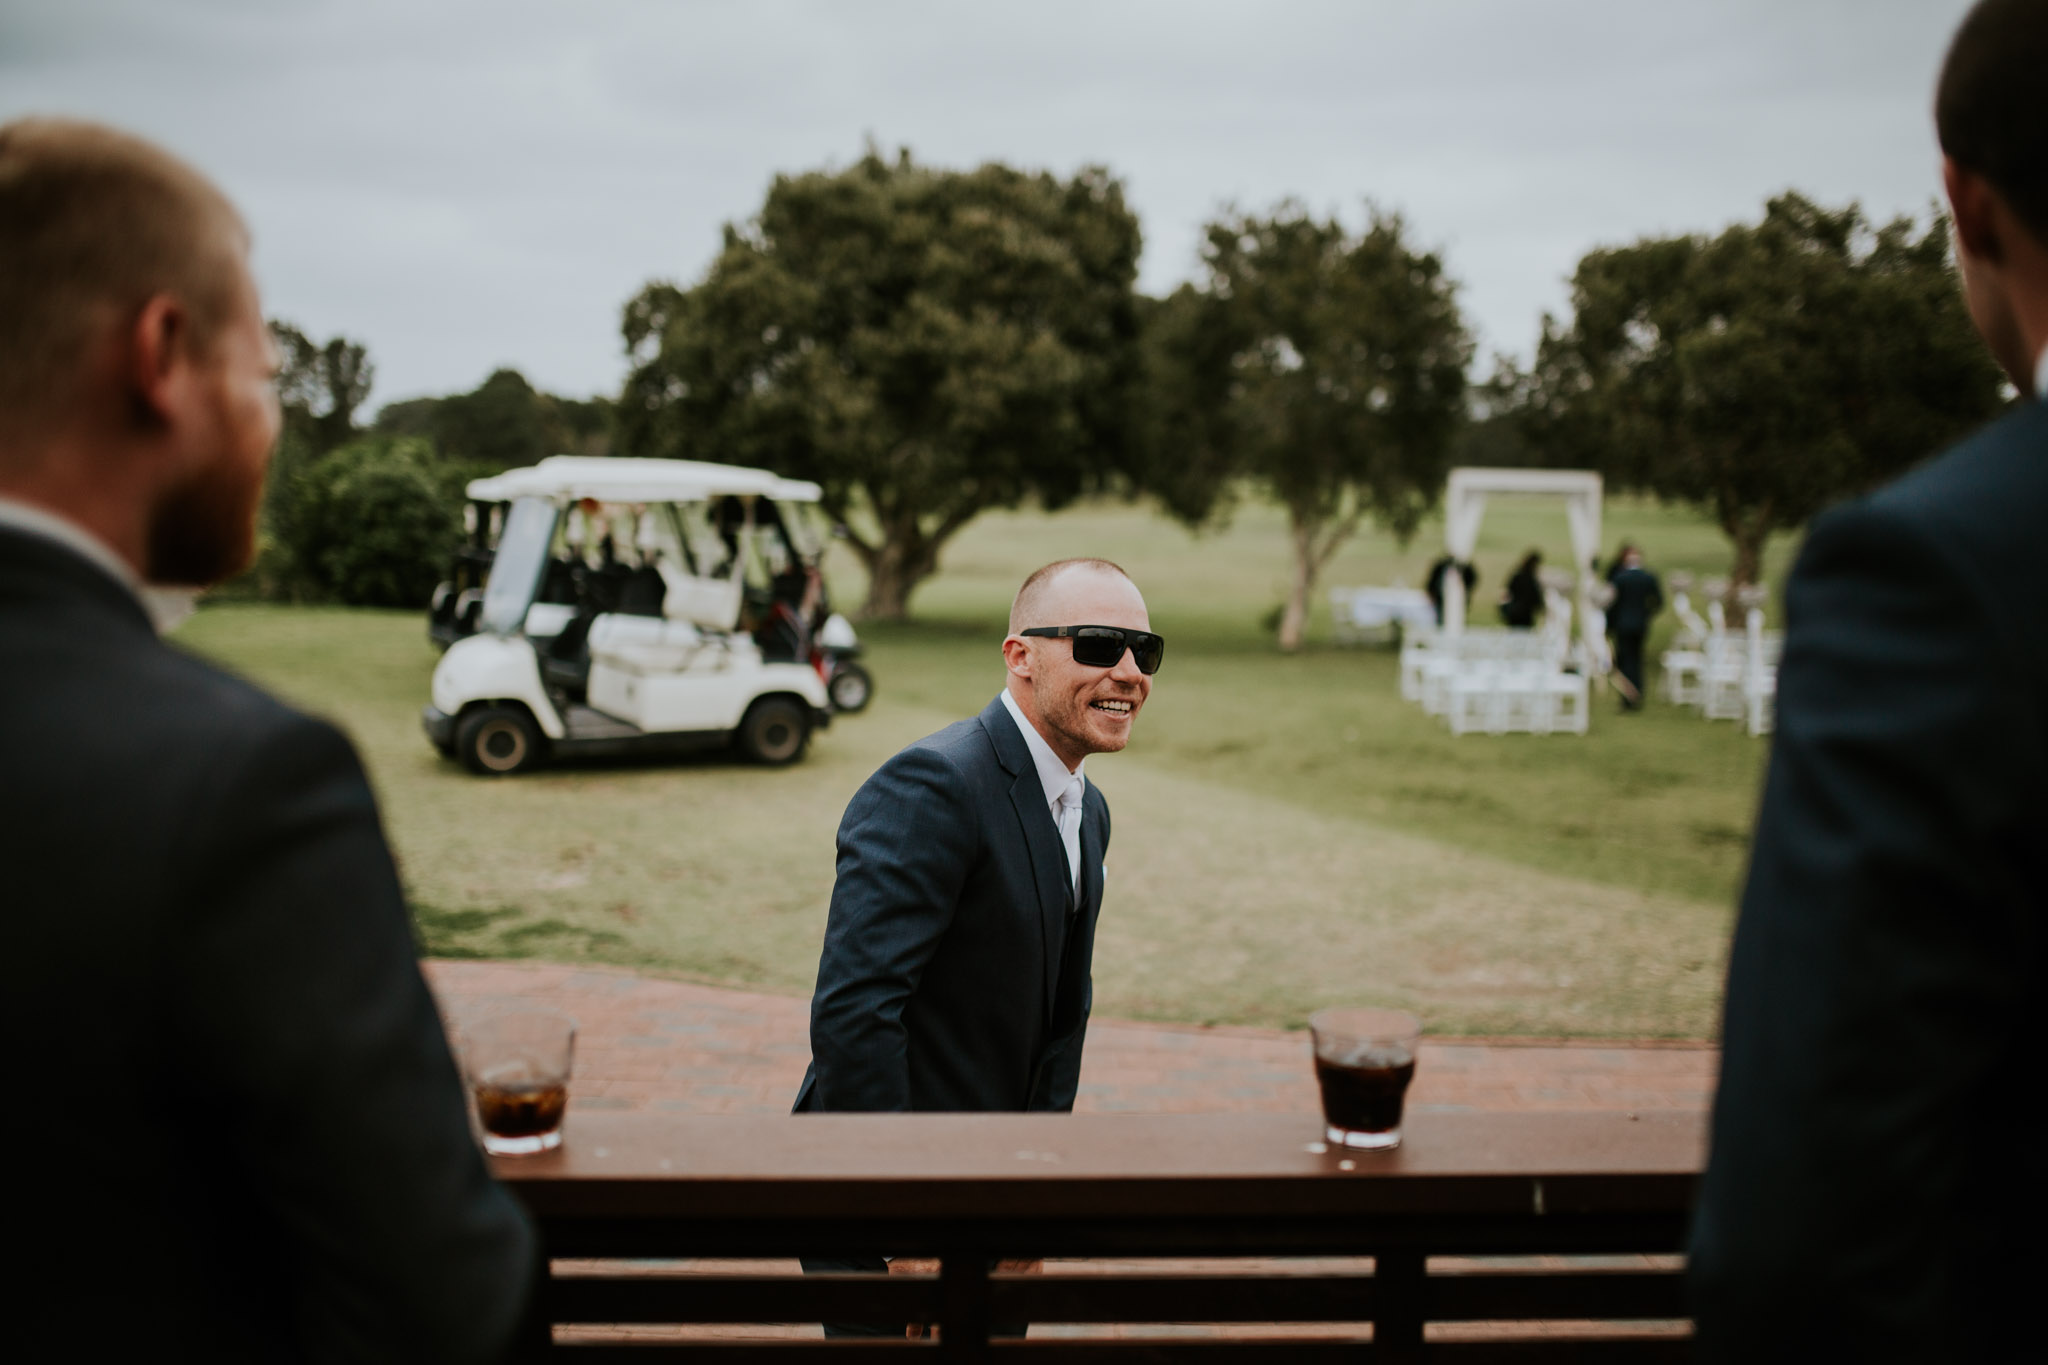 Shanan & Traci_Portkembla Golf Course Wedding-22.jpg